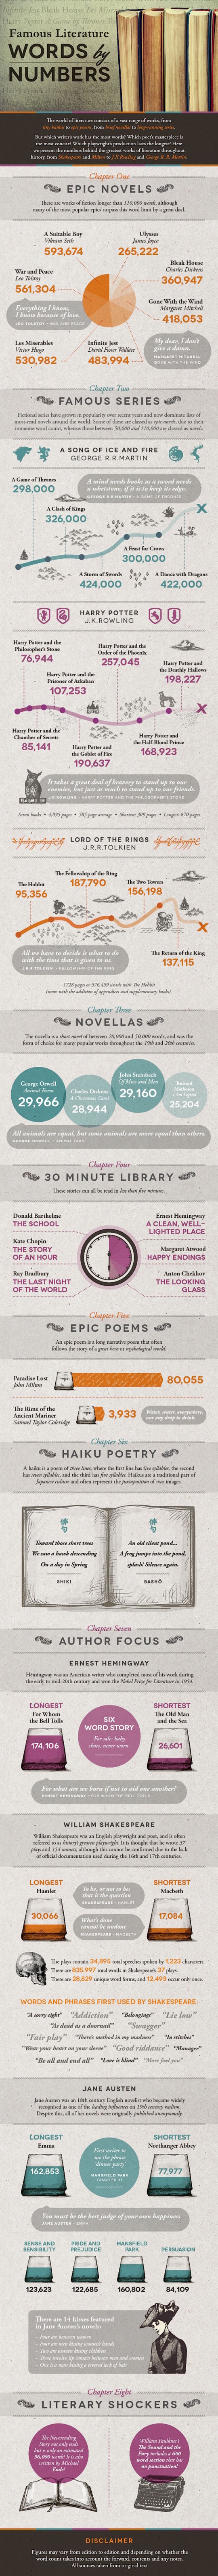 Famous-classic-books-by-the-numbers-full-infographic-540x6380